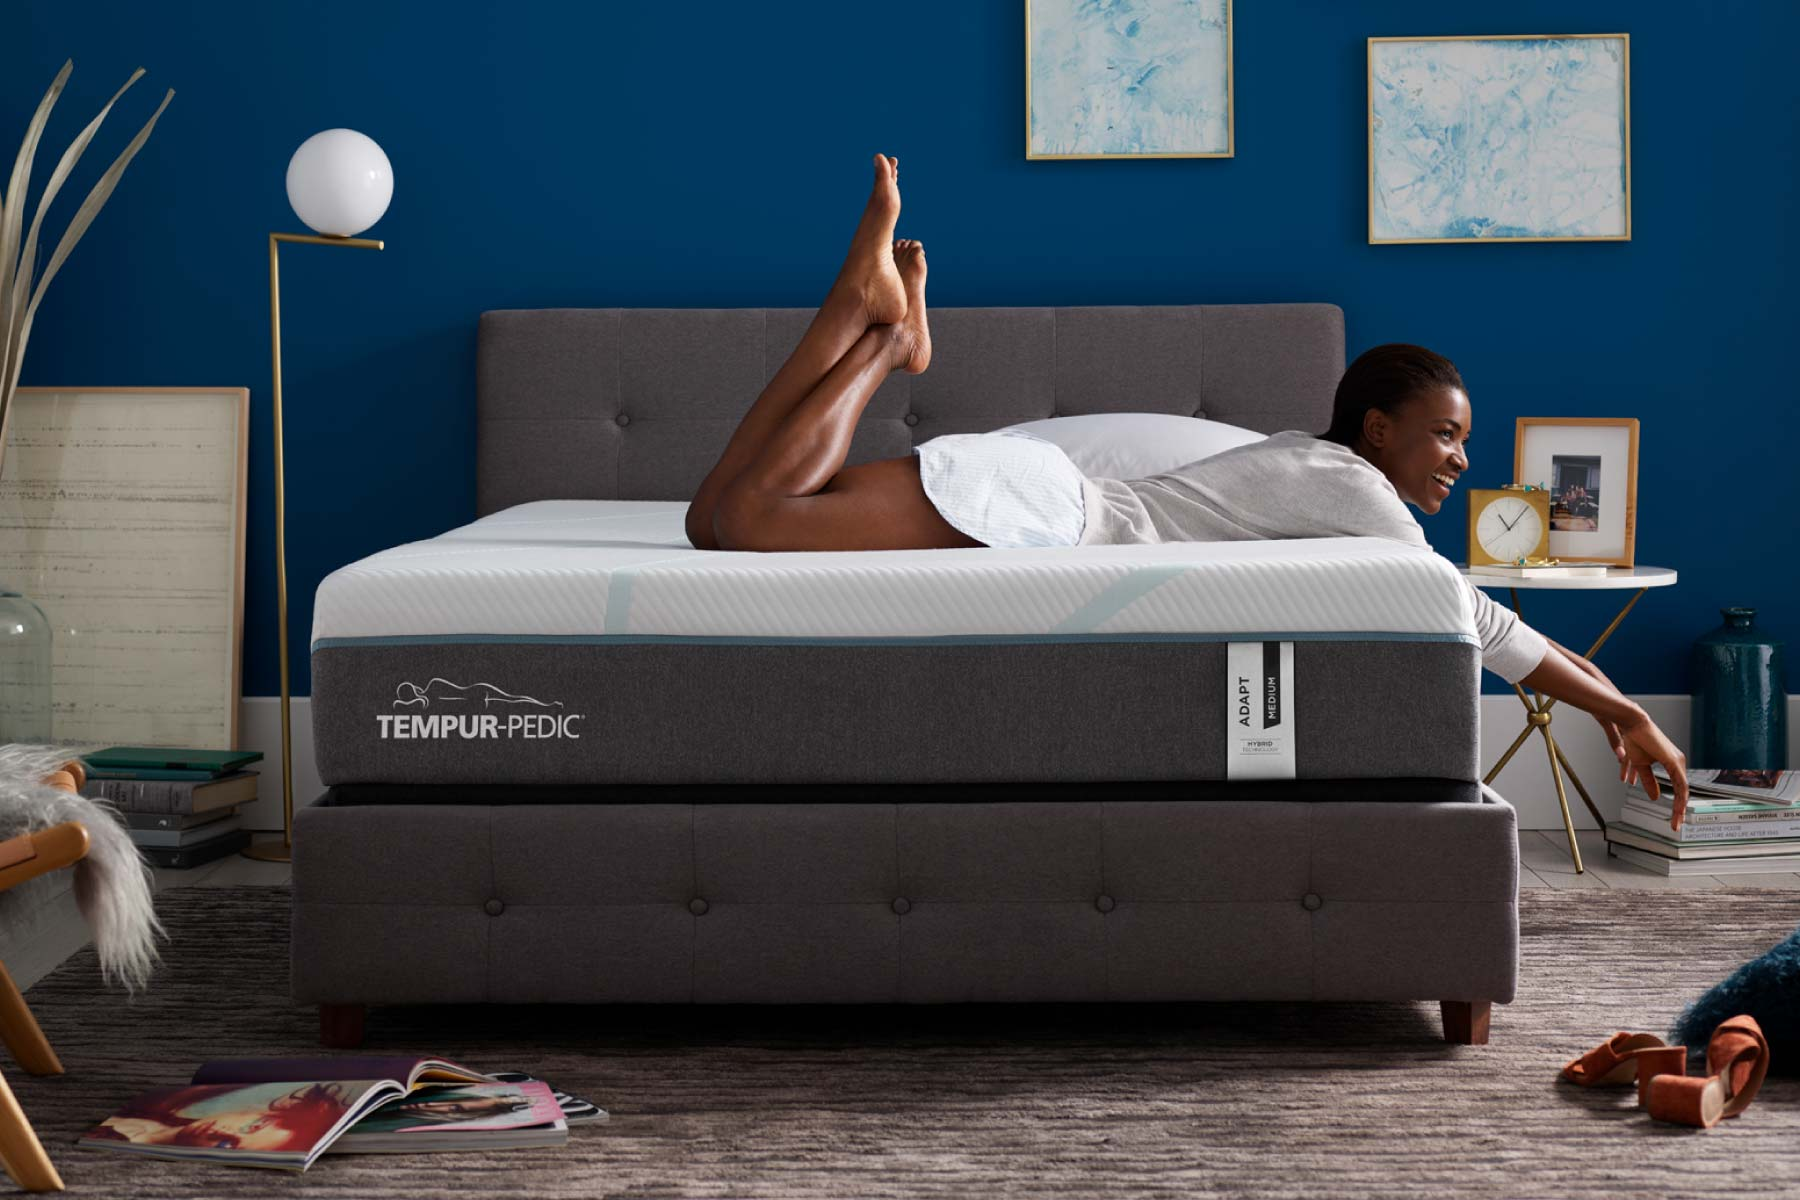 Young woman lounging over the side of a Tempur-Pedic Adapt mattress in a bedroom with a dark blue wall.